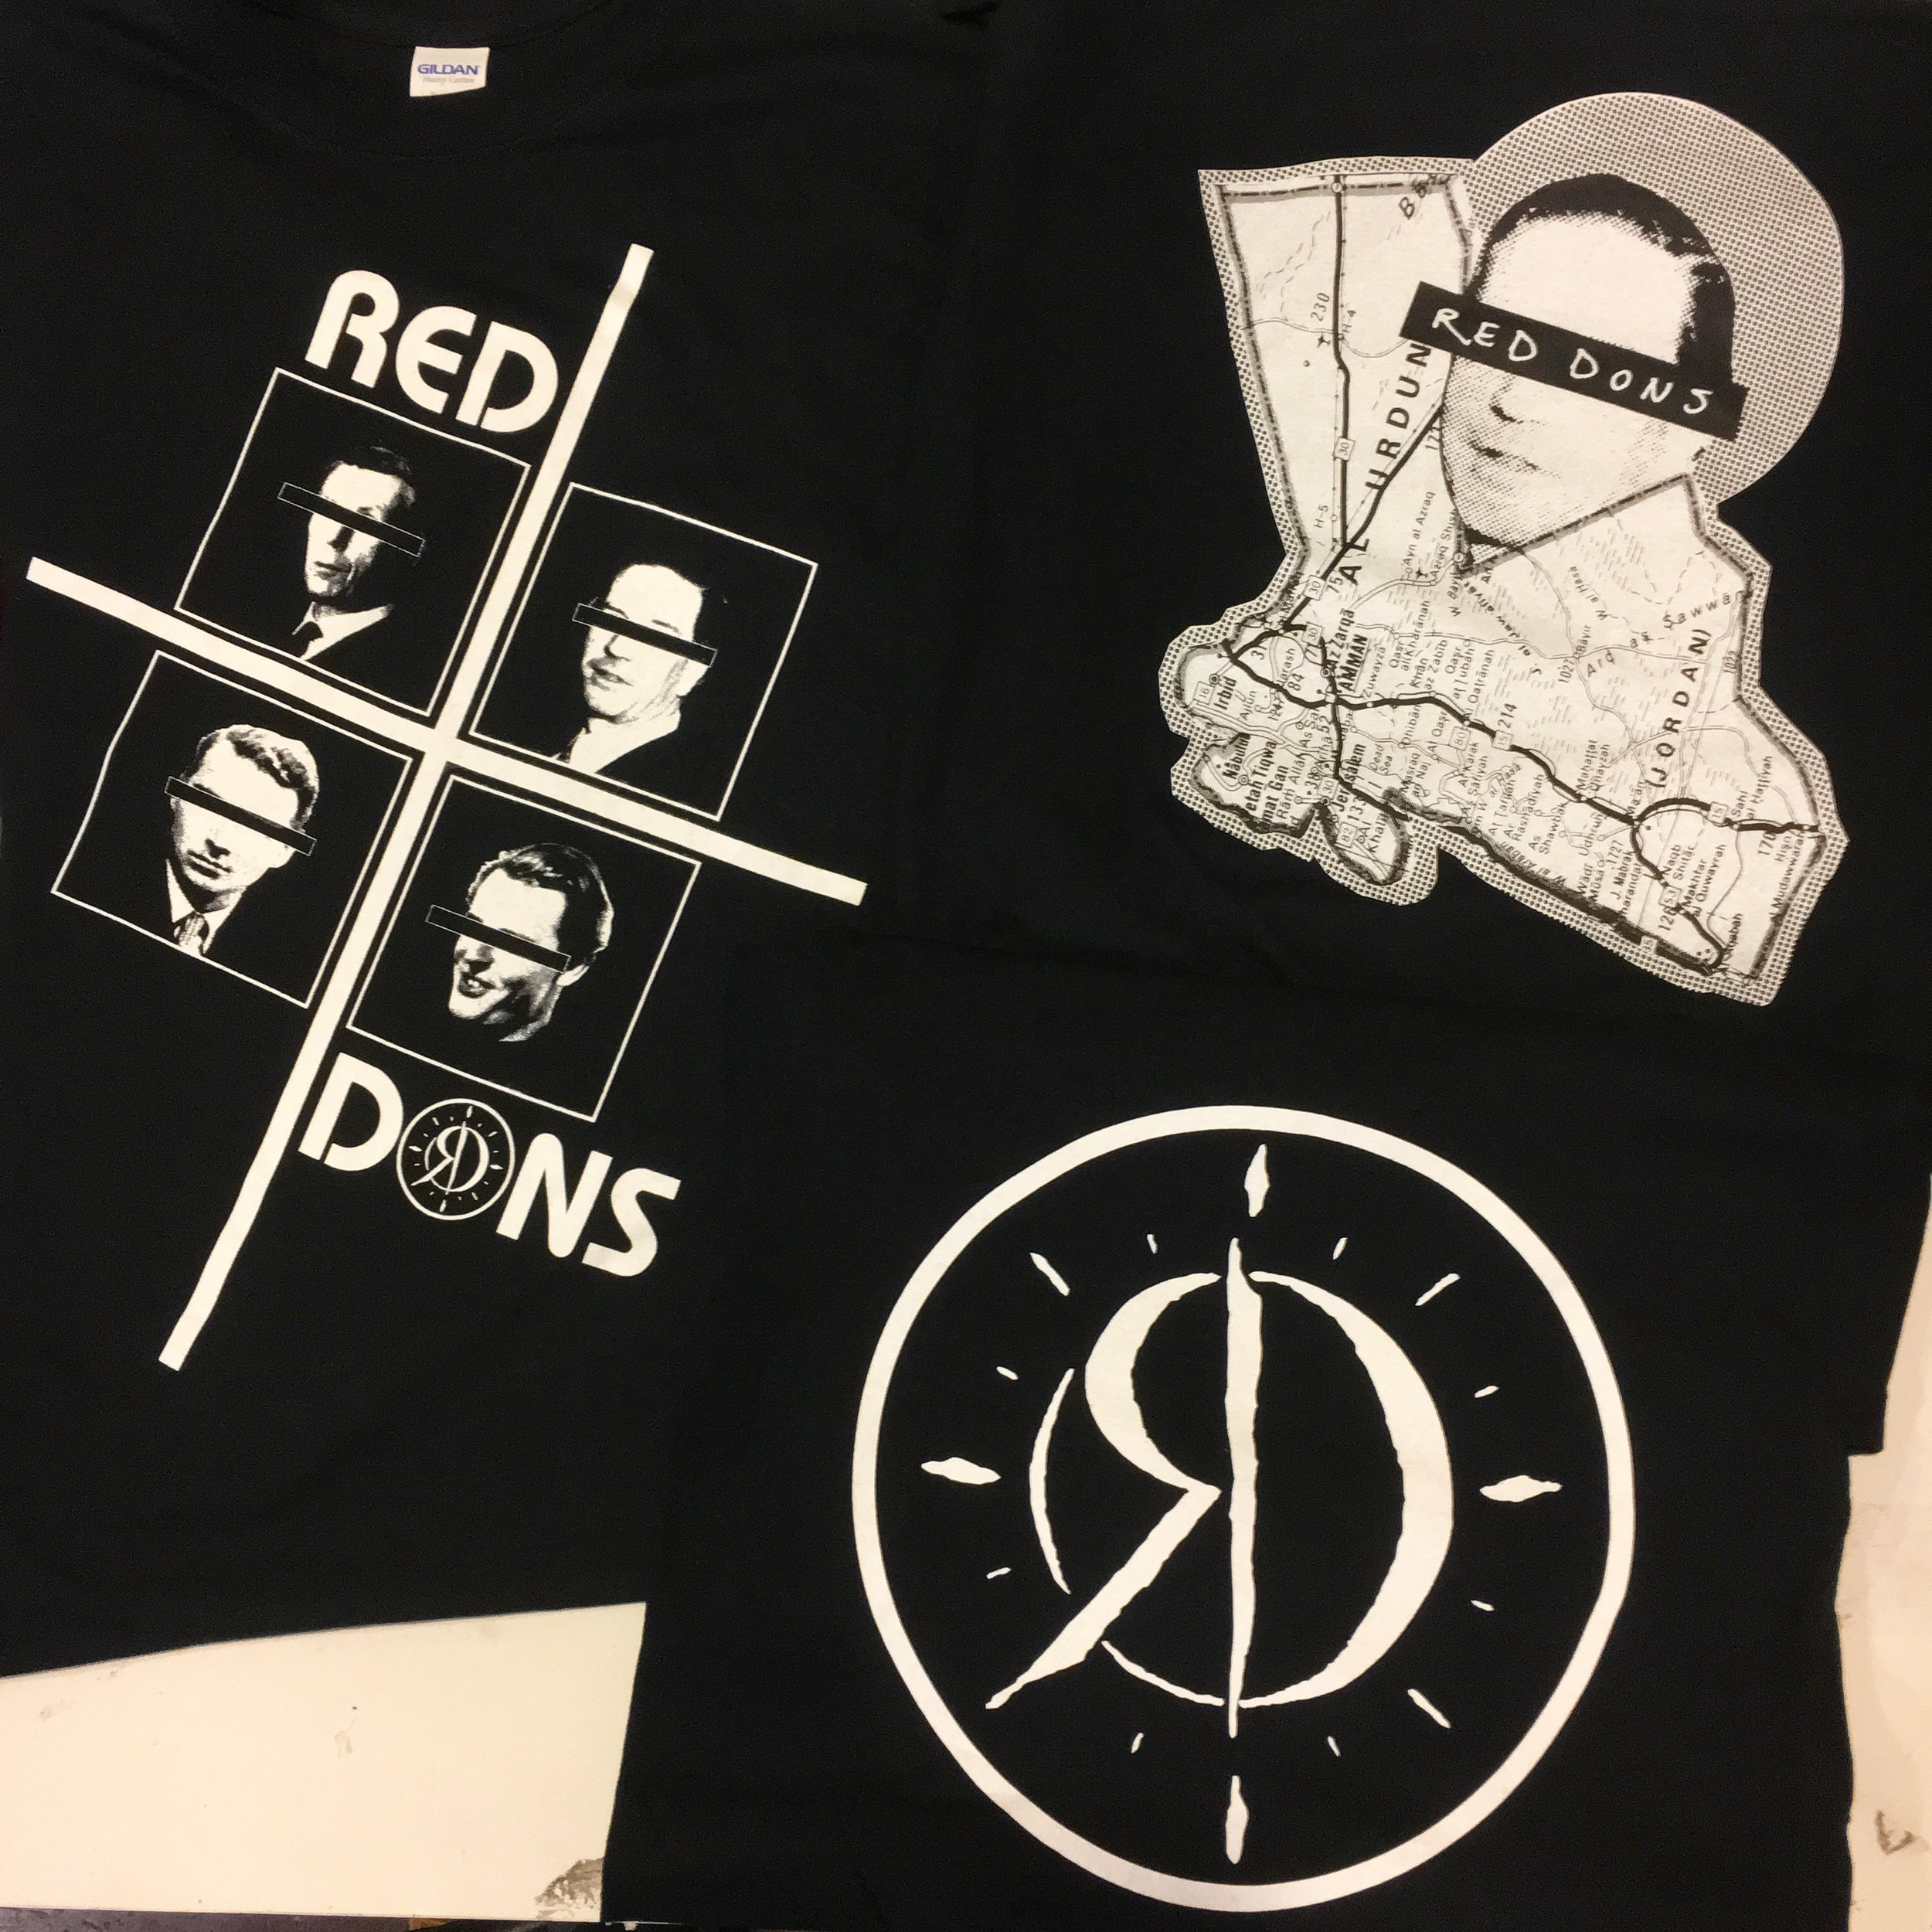 3 designs printed for Red Dons from Portland, OR